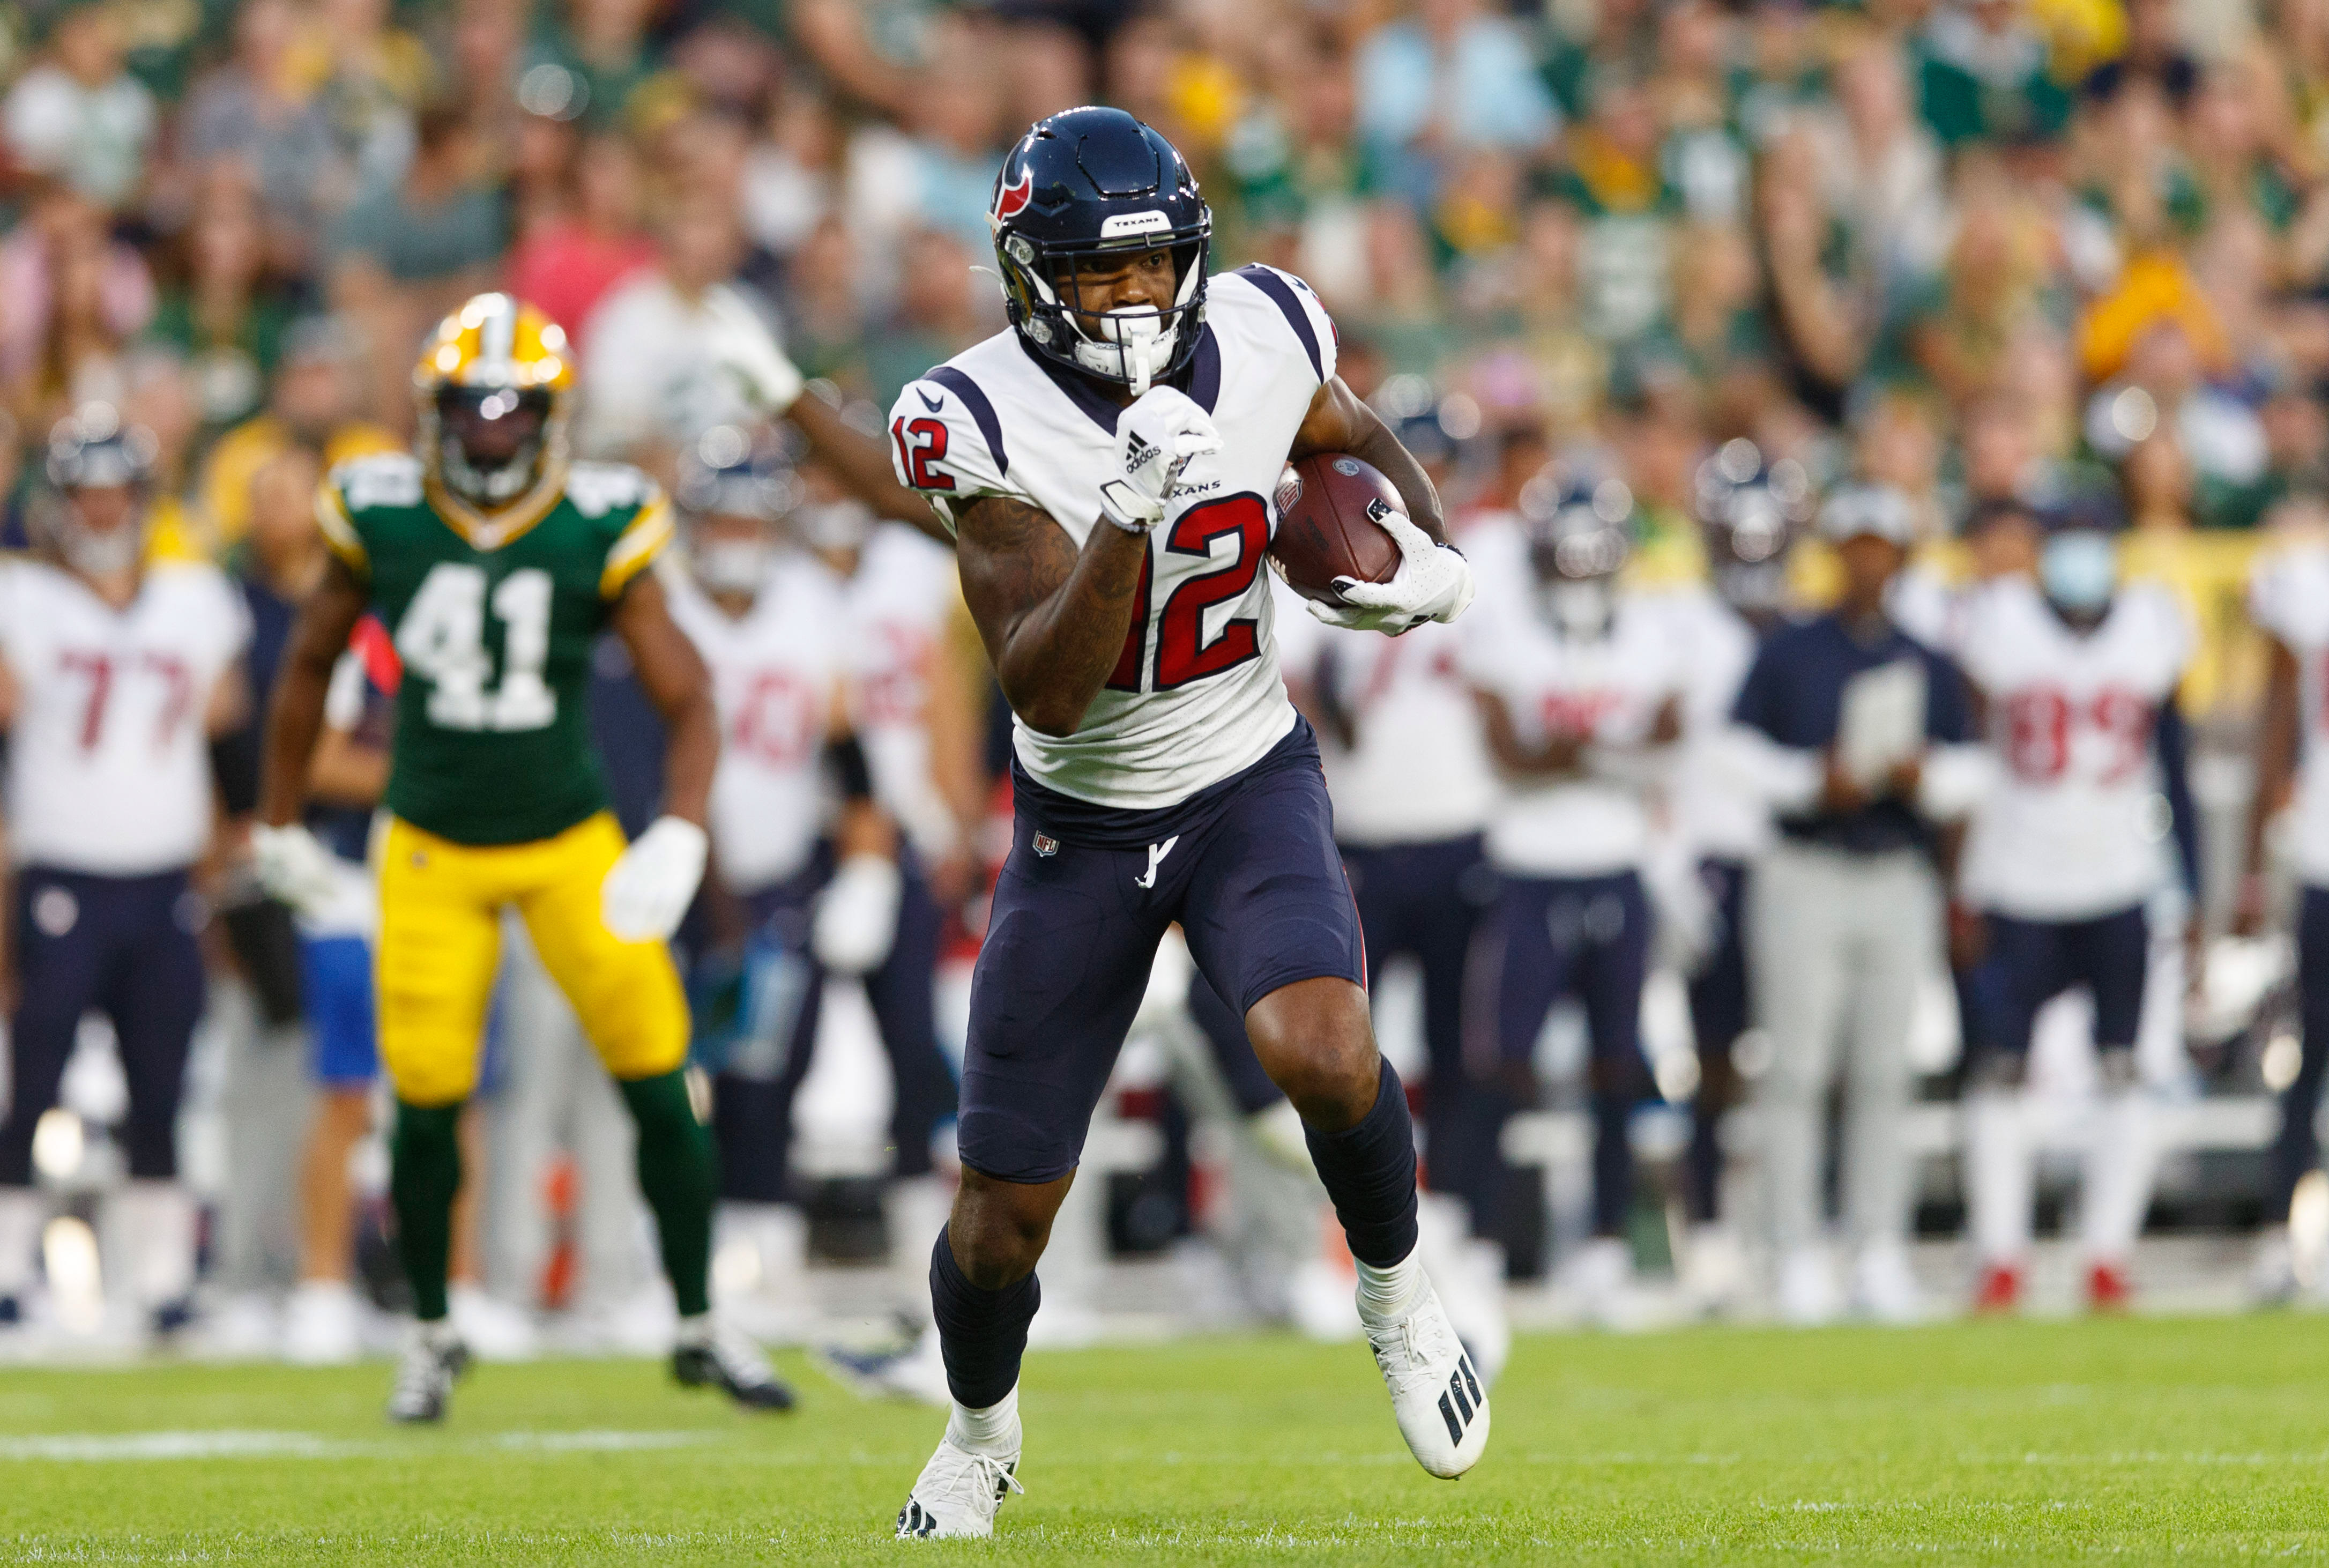 Houston Texans wide receiver Nico Collins (12) during the game against the Green Bay Packers at Lambeau Field.